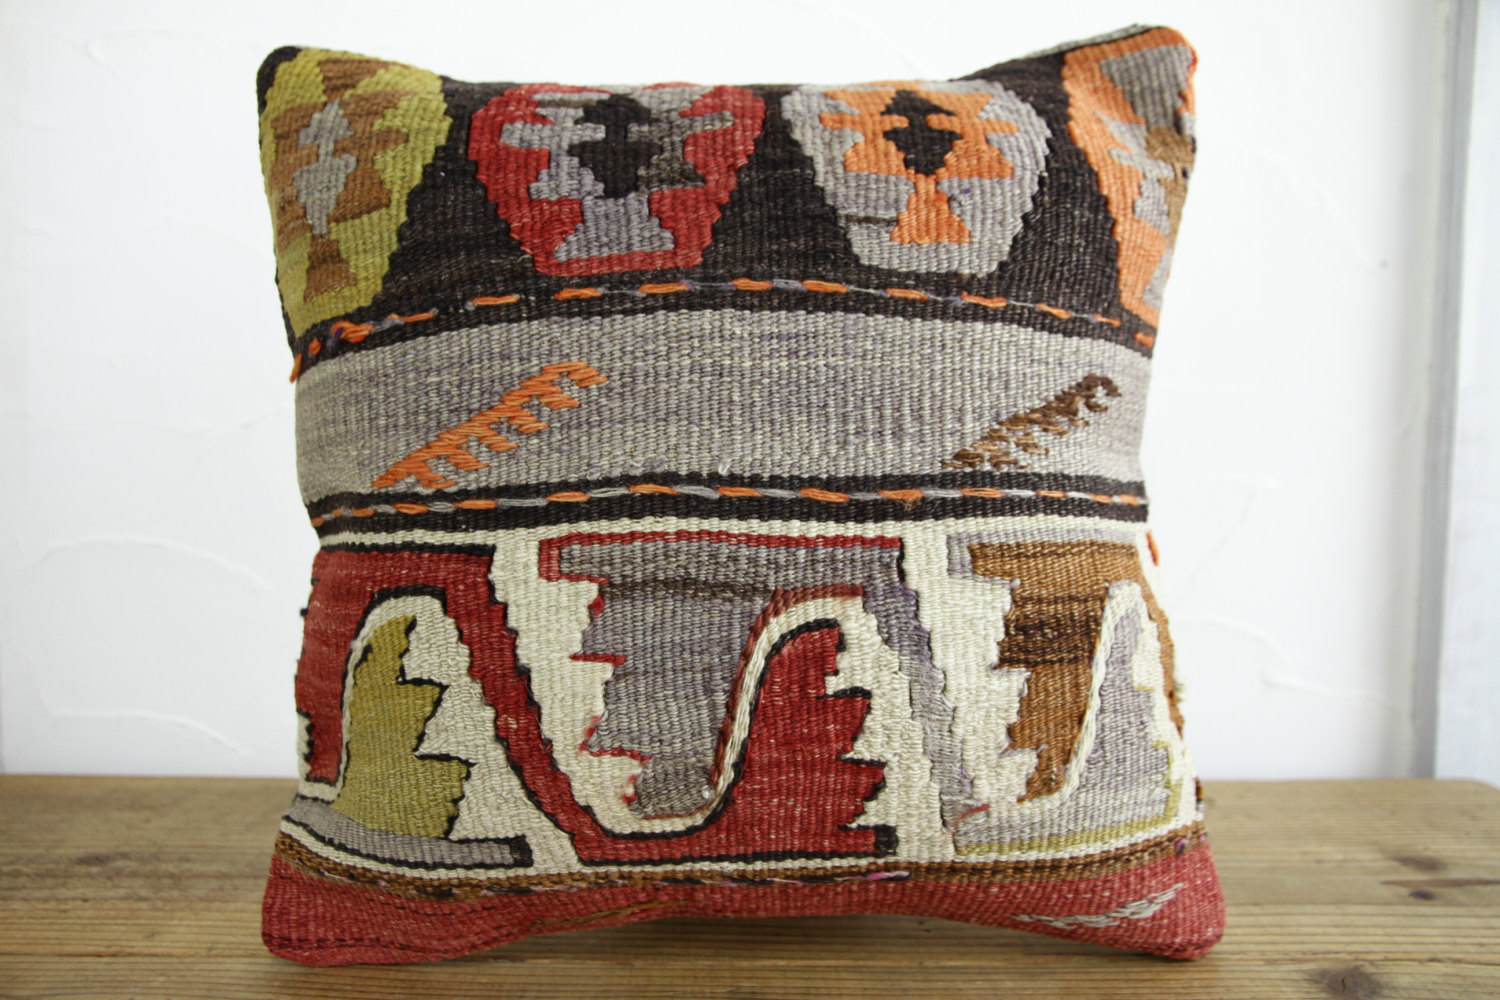 Kilim Pillows |16x16 | Decorative Pillows | 166 | Accent Pillows, Kilim cushion